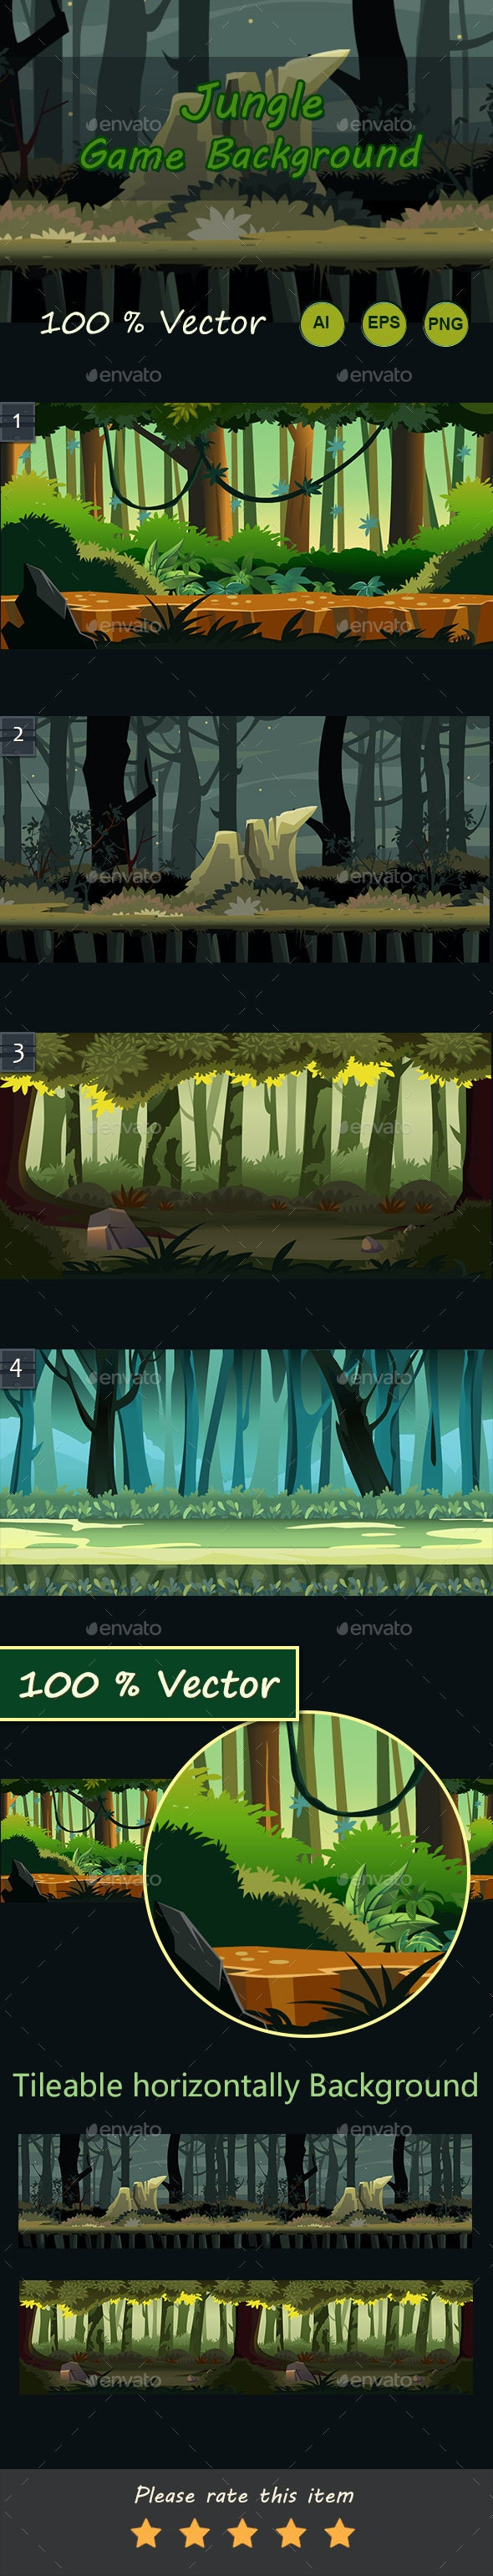 Jungle Game Background - Backgrounds Game Assets